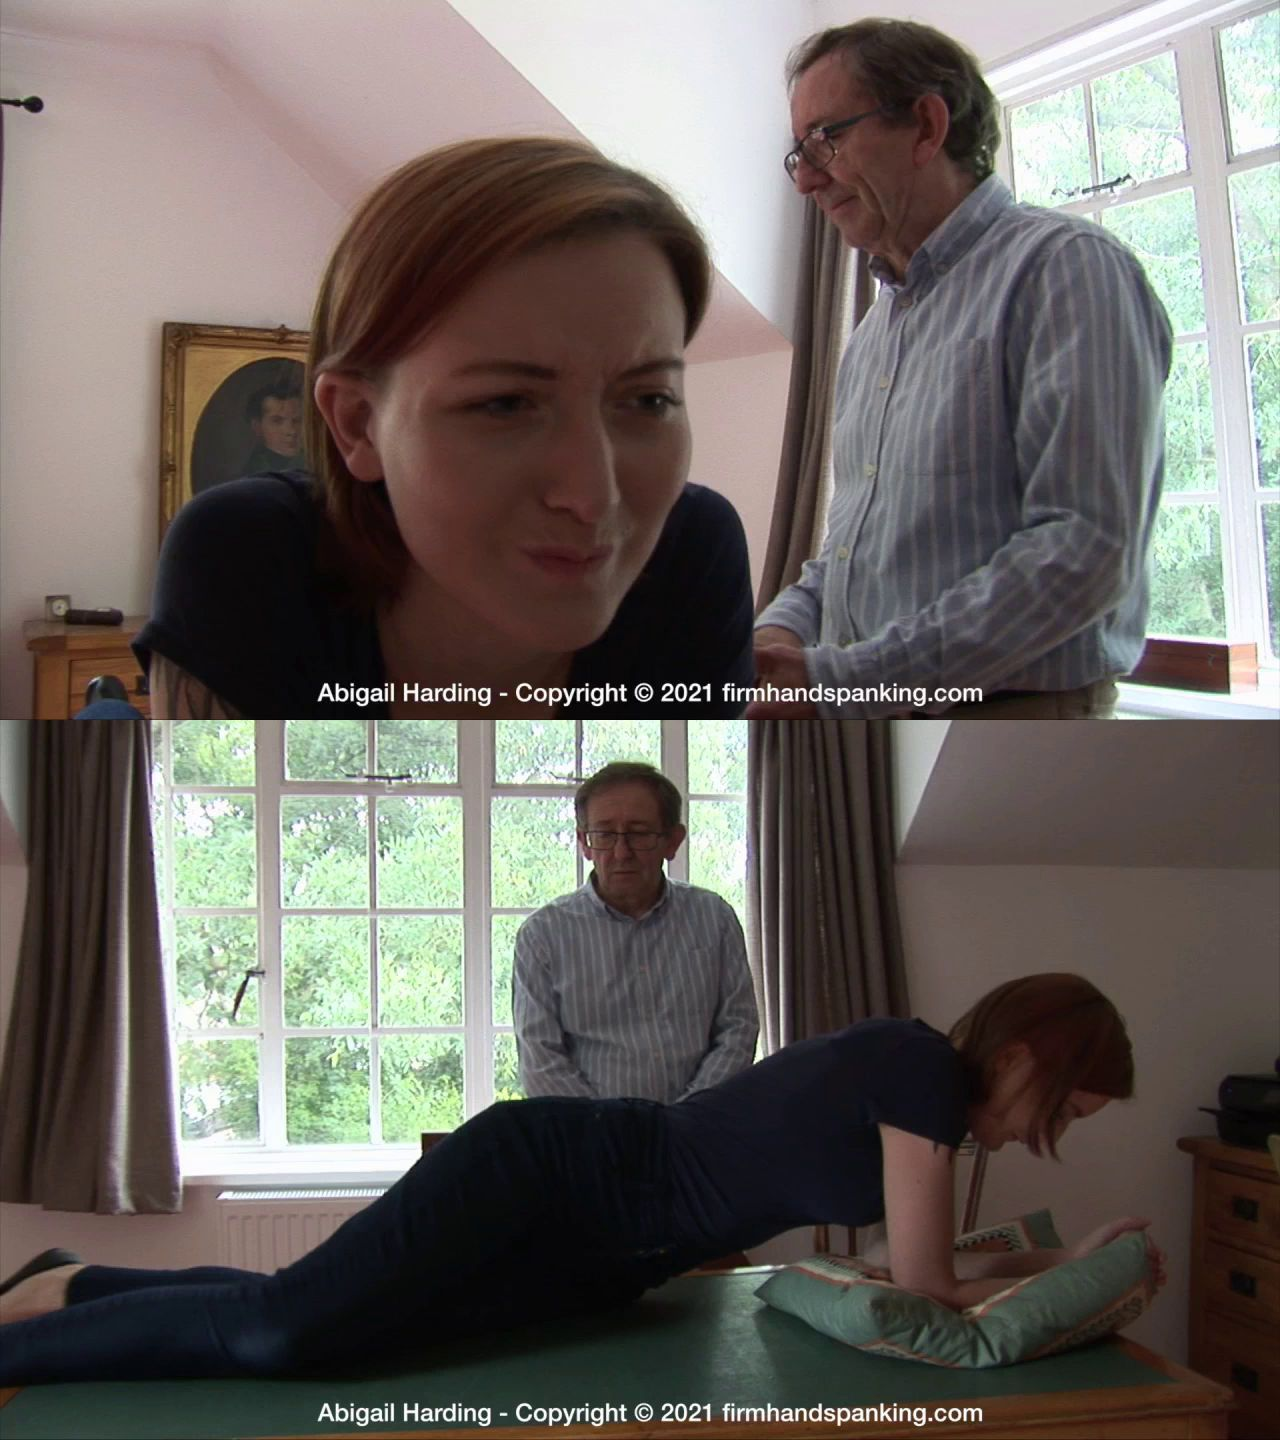 firmhandspanking – MP4/HD – Abigail Harding – The Estate (Release date: May 26, 2021)